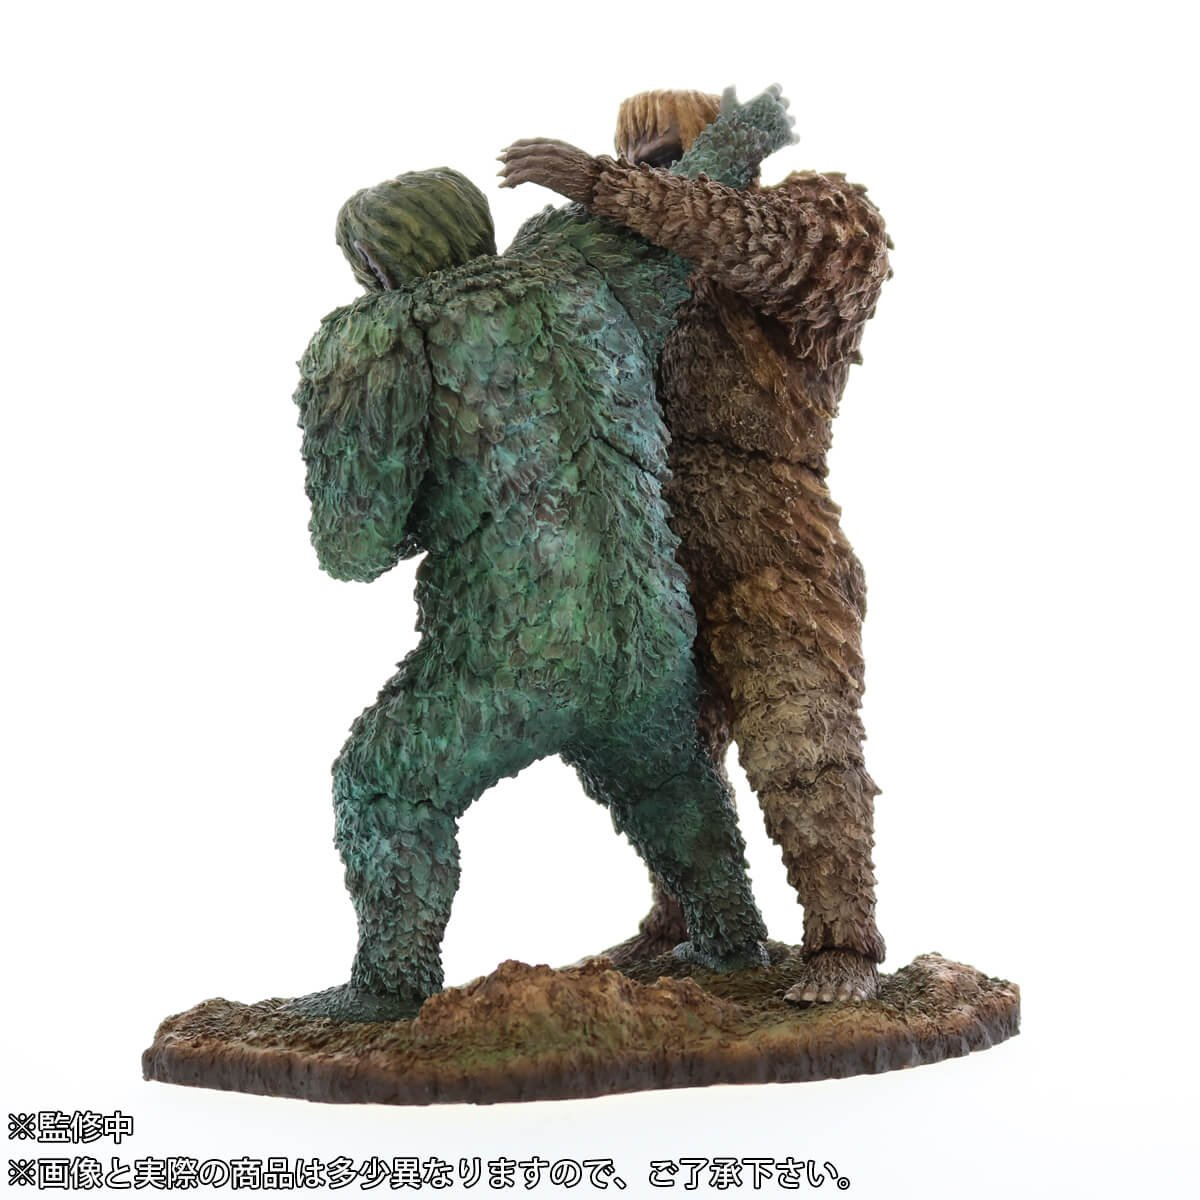 Toho Large Monster Series Sanda vs. Guyra Shonen Rick Limited Edition 4